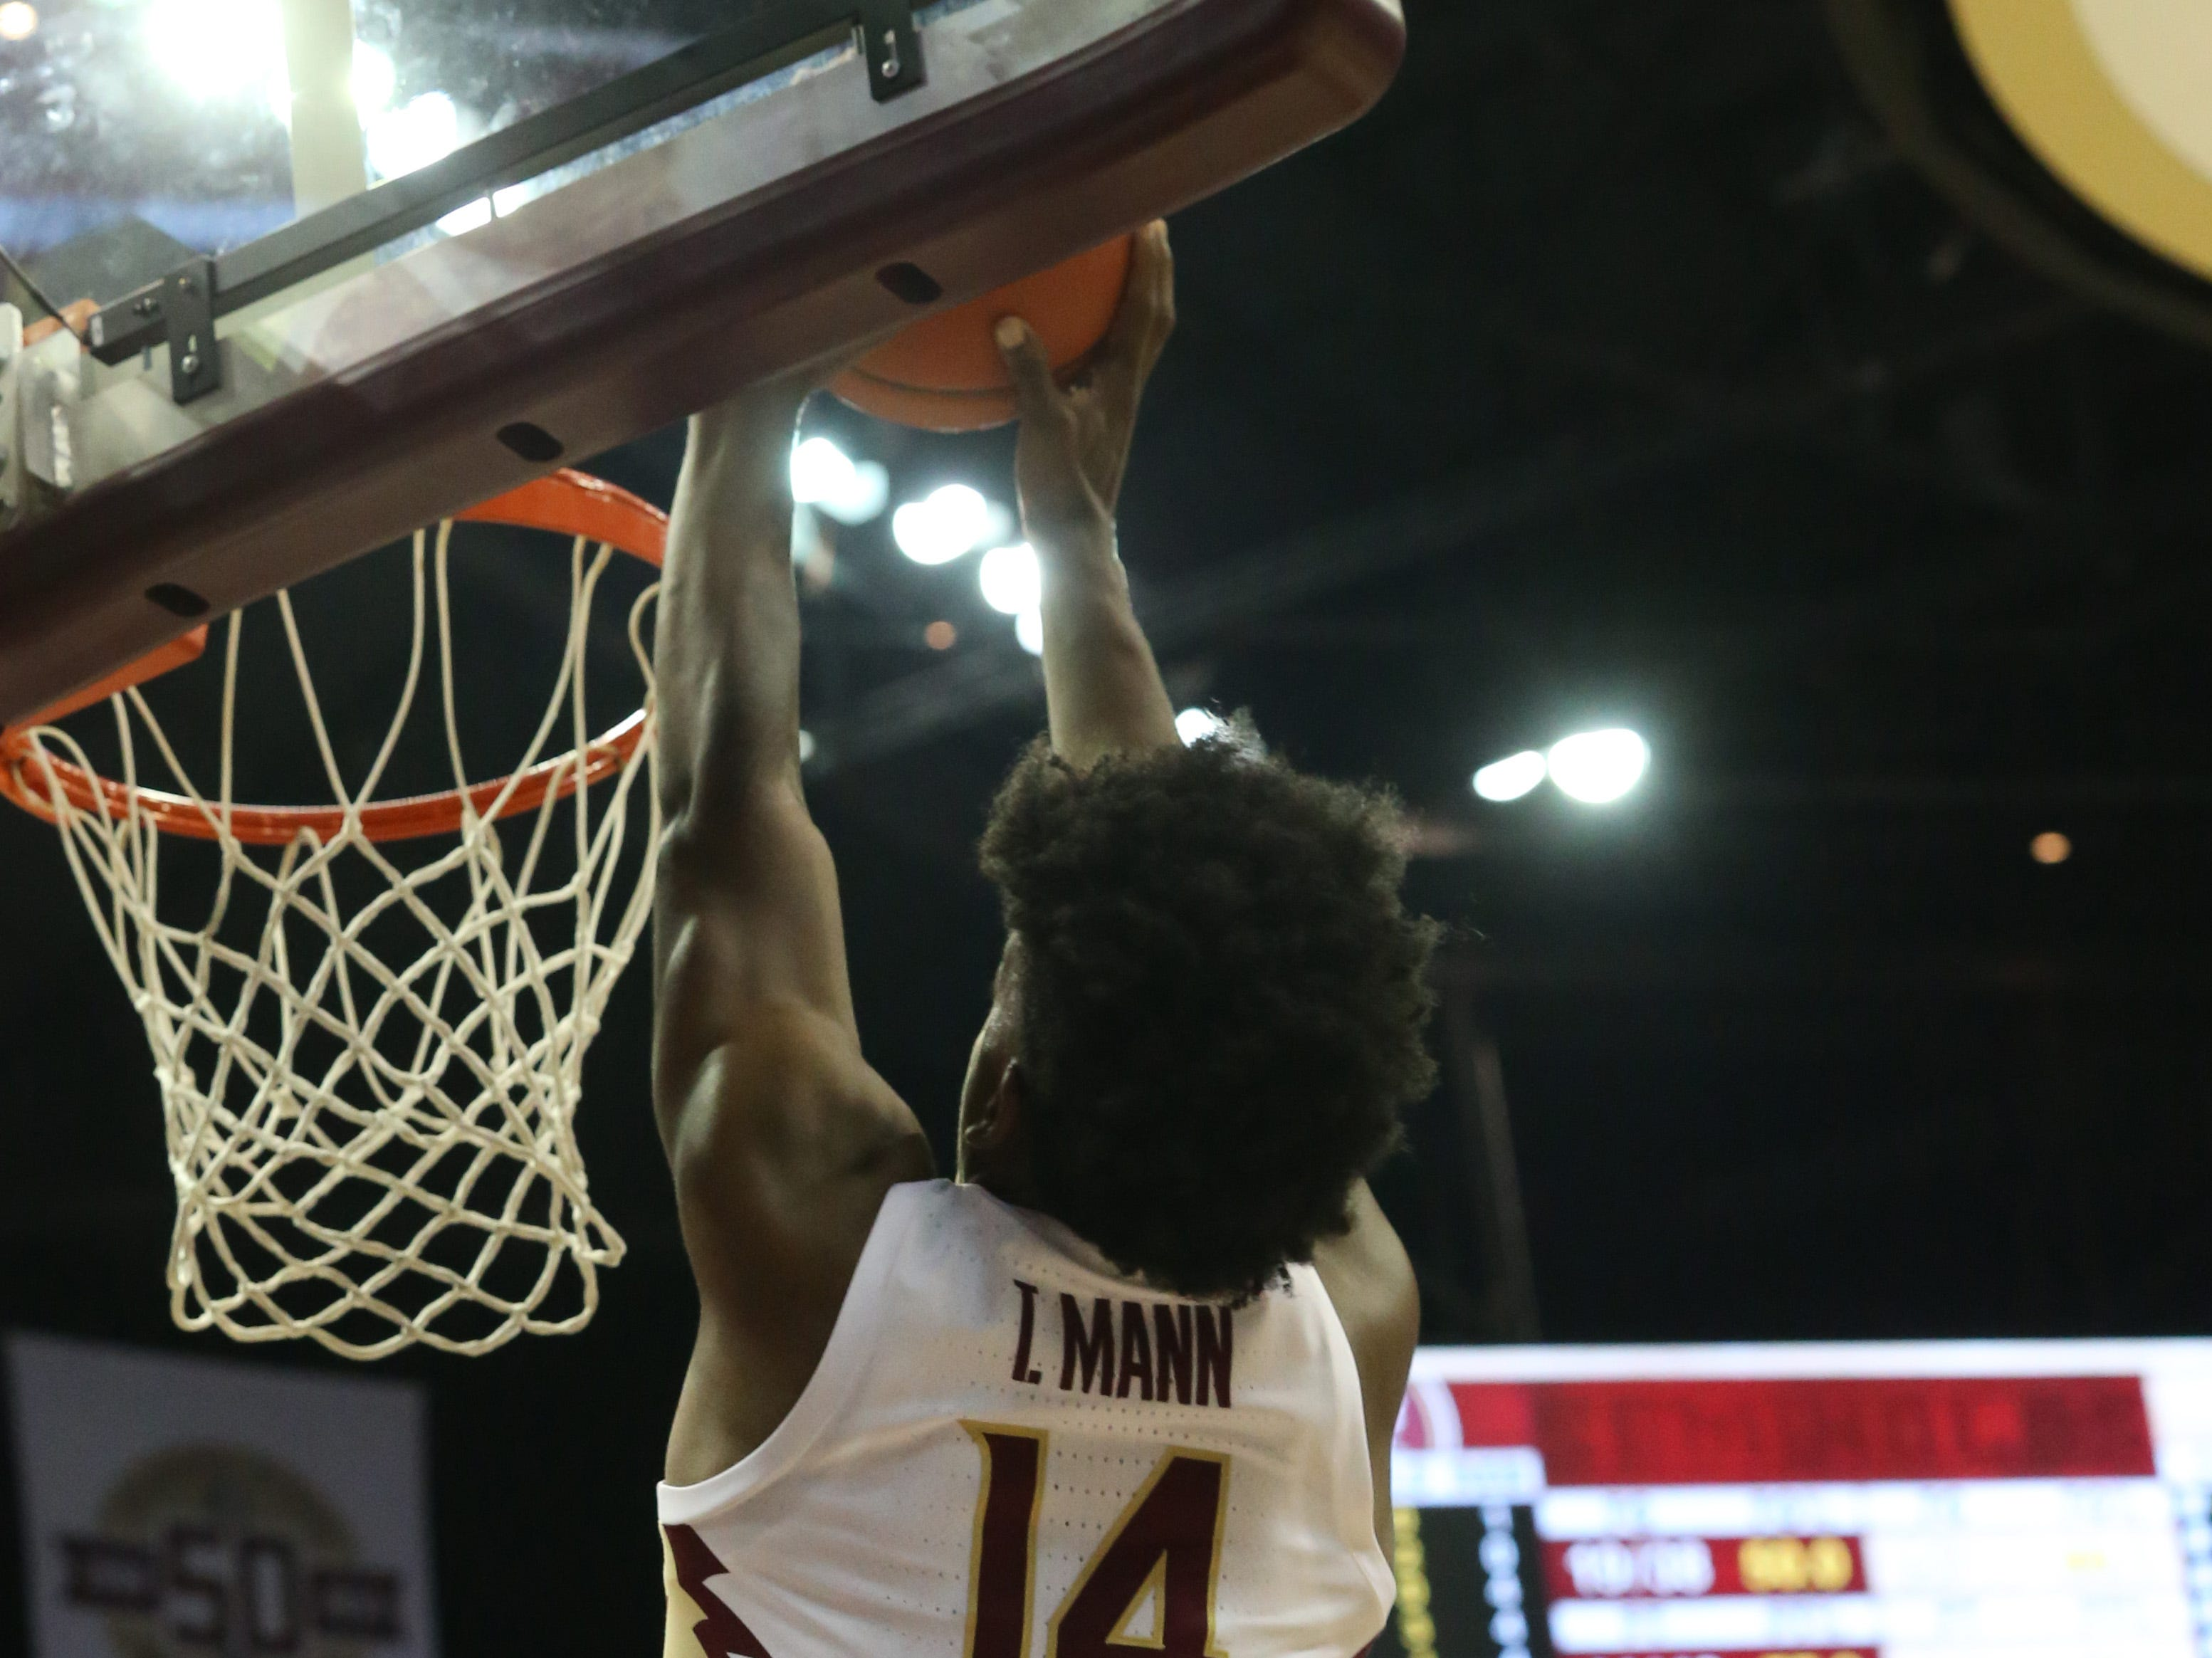 Florida State Seminoles guard Terance Mann (14) dunks on Canisius defense as the Florida State Seminoles host the Canisius Golden Griffins for basketball in the Tucker Civic Center, Monday, Nov. 19, 2018.